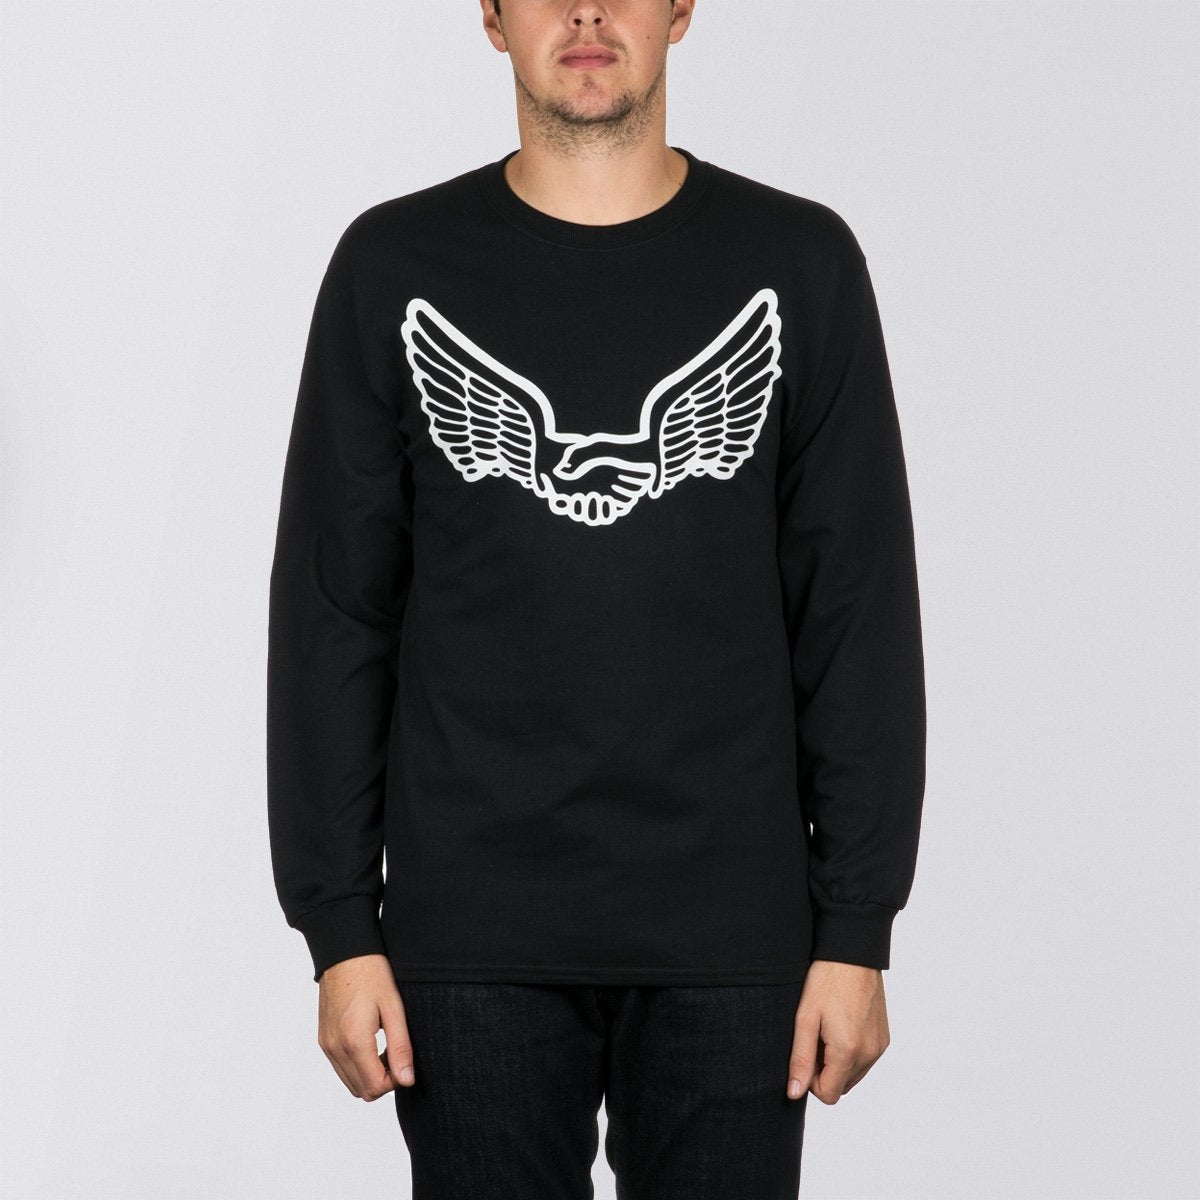 Unabomber Wings Long Sleeve Tee Black/White - Clothing